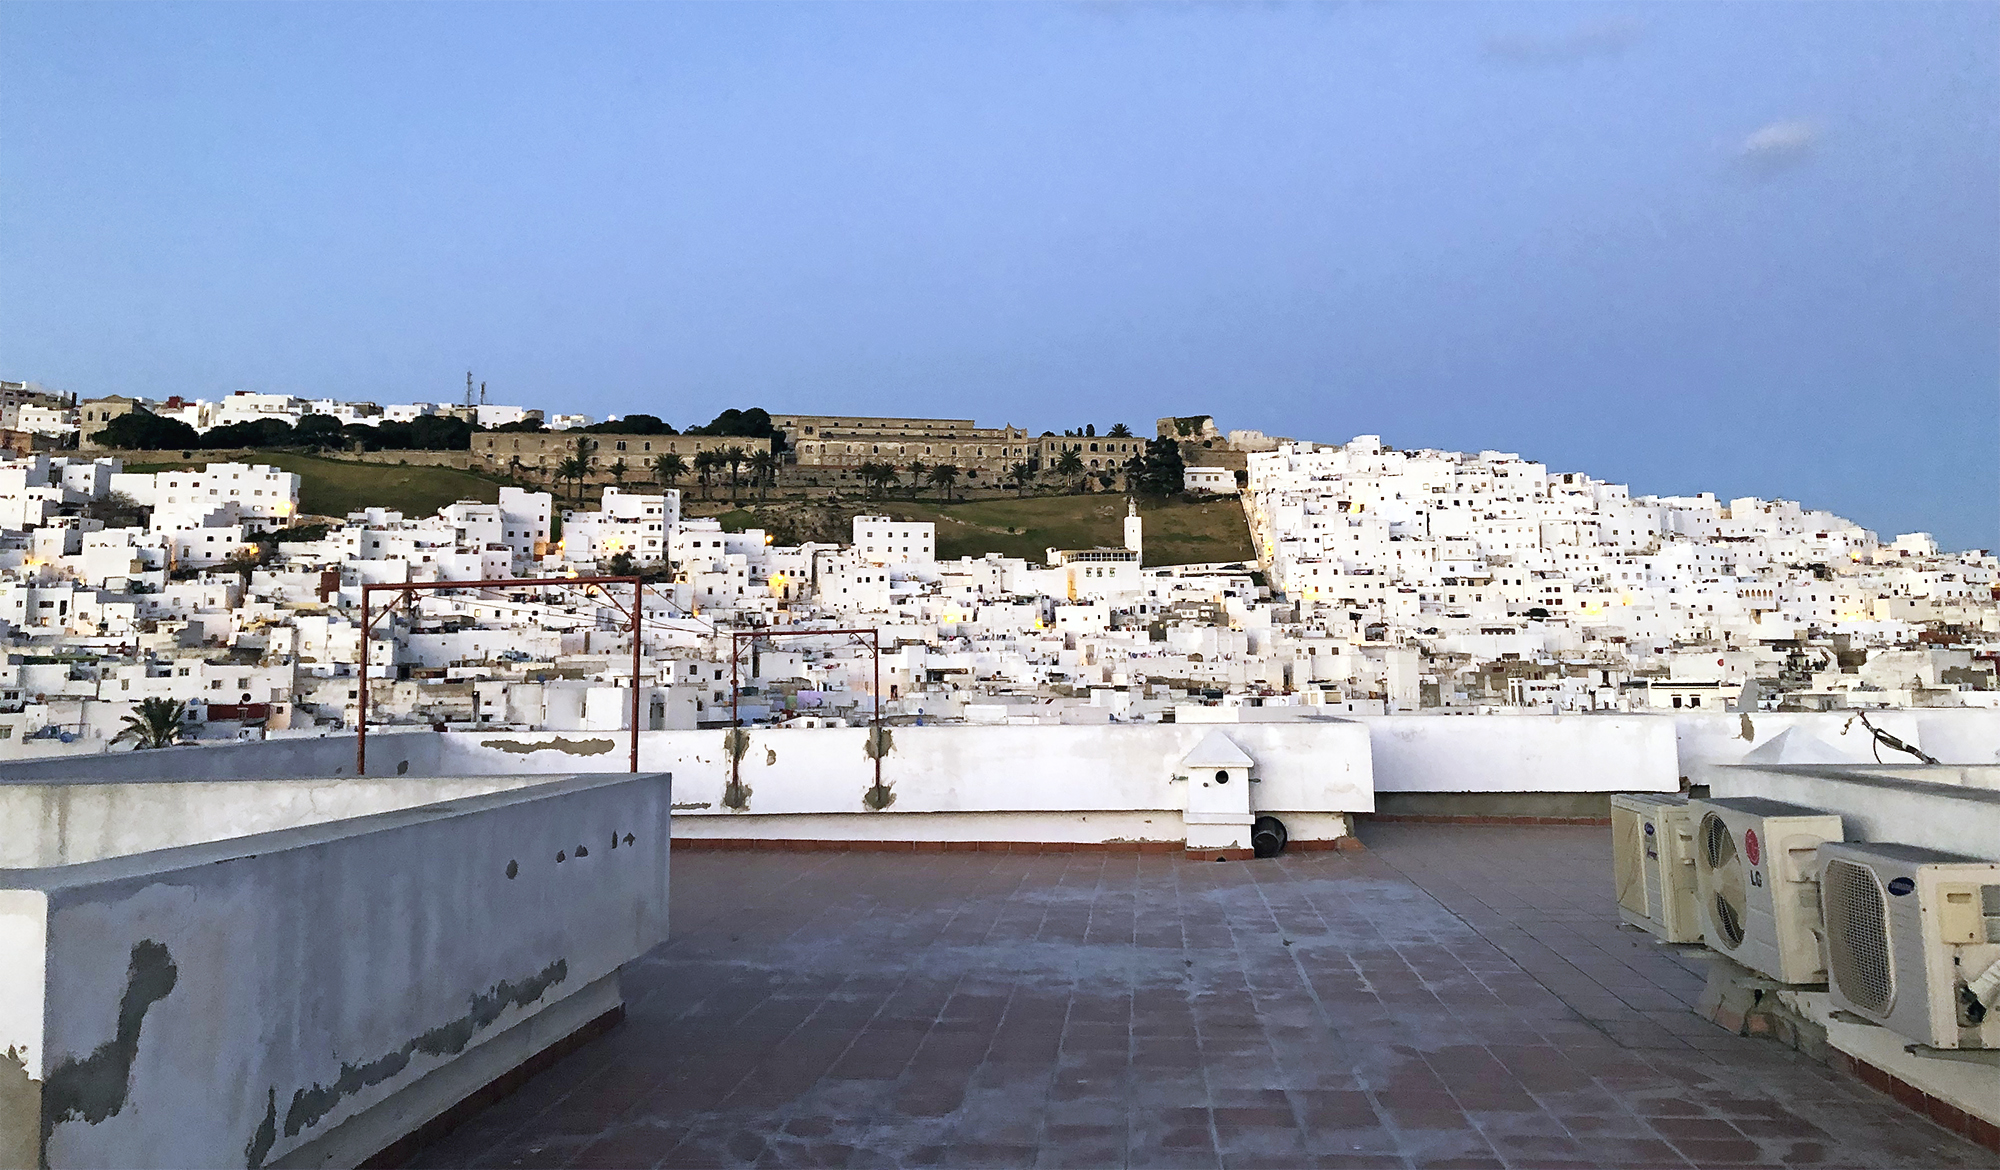 The Medina in modern day Tetouan.